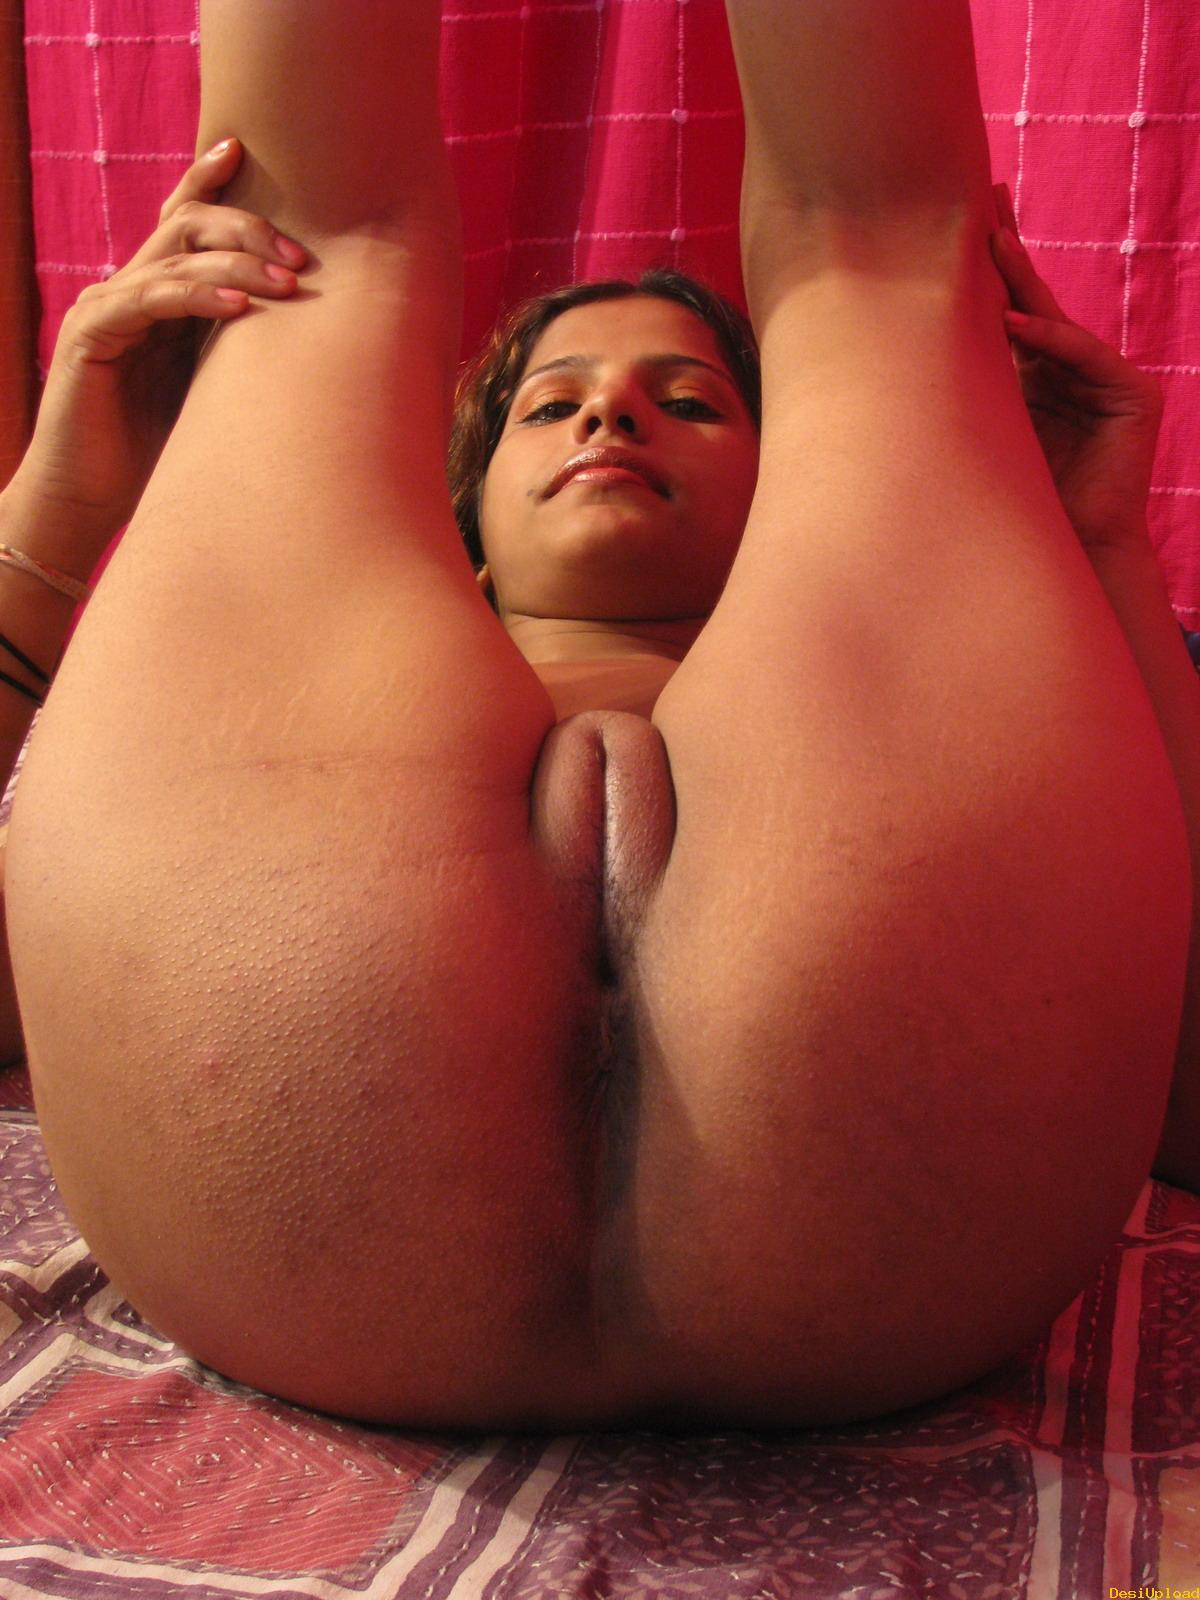 south indian women pussy